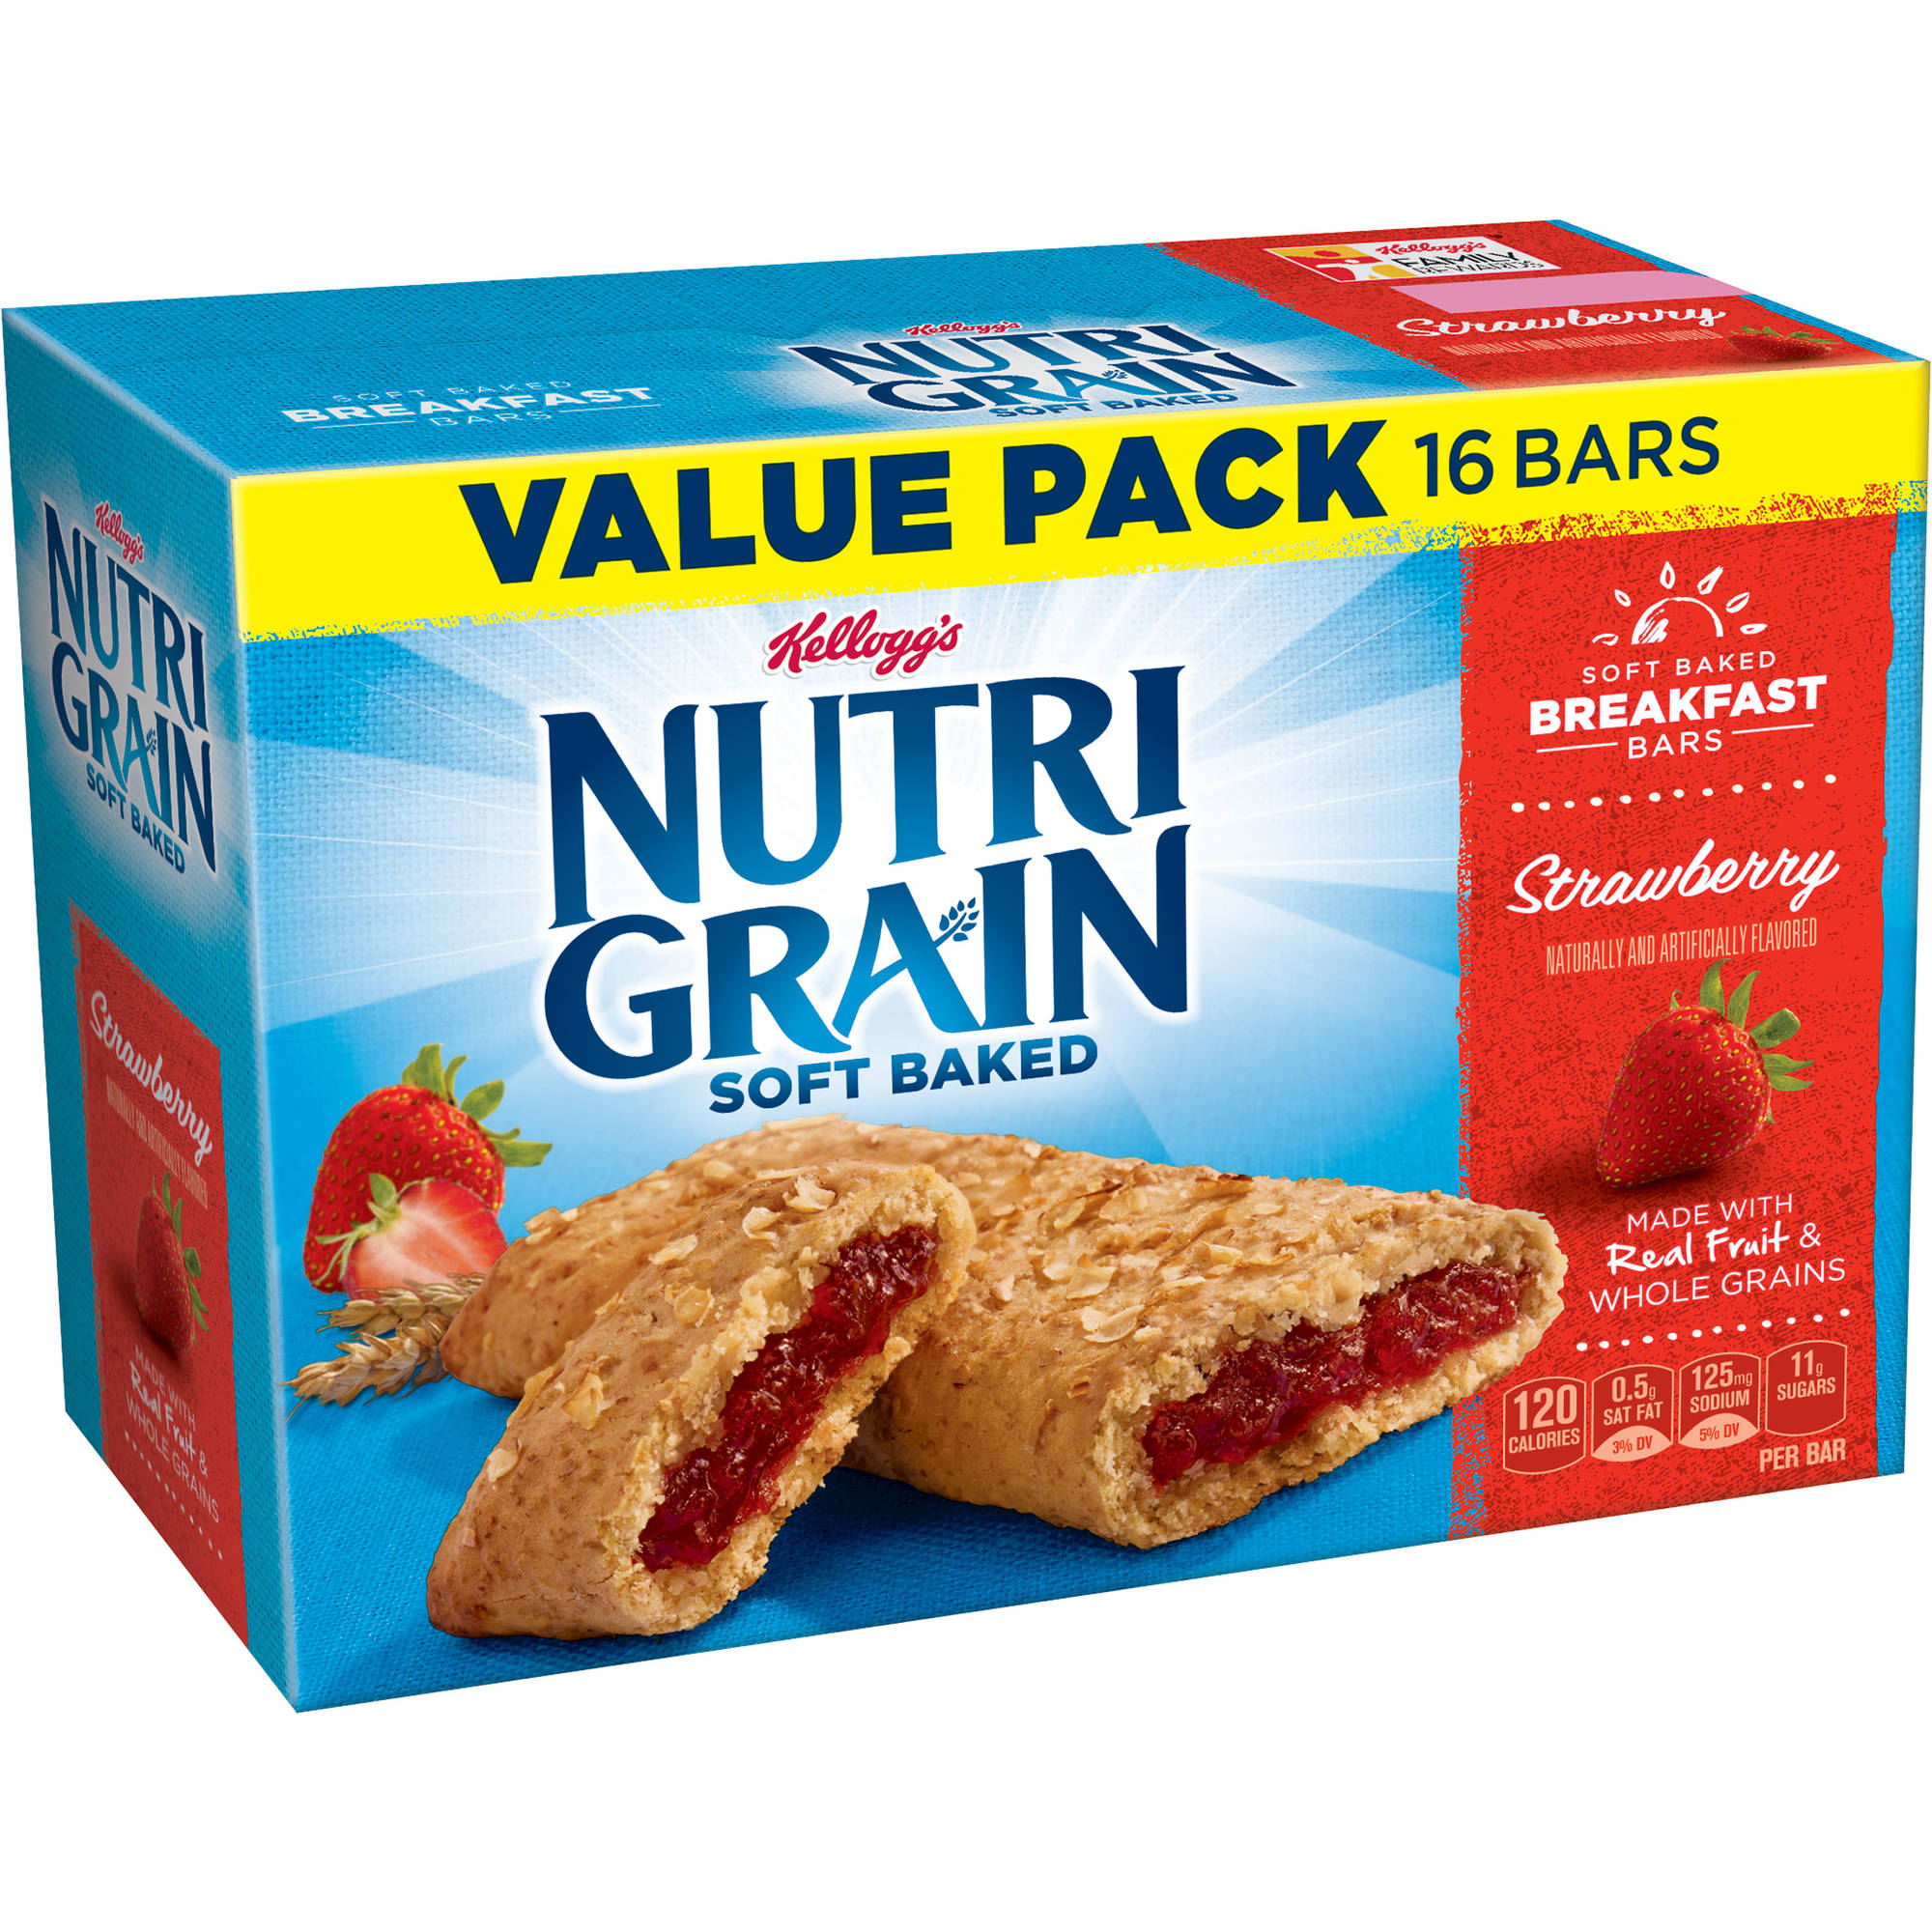 Kellogg's Nutri-Grain Soft Baked Strawberry Breakfast Bars 1.3oz 16 ct